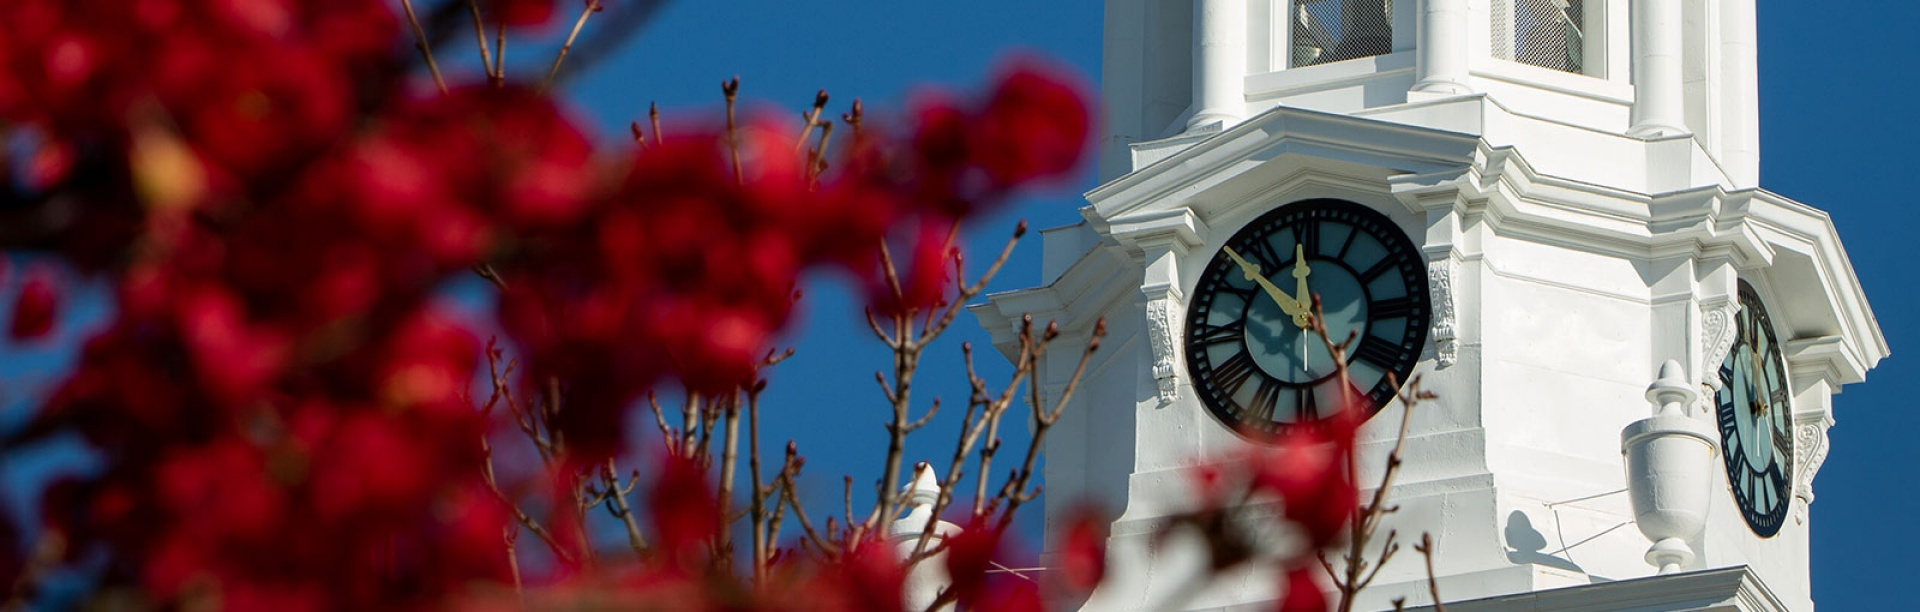 Photo of Hayes Hall clock tower with red flowers in the foreground.